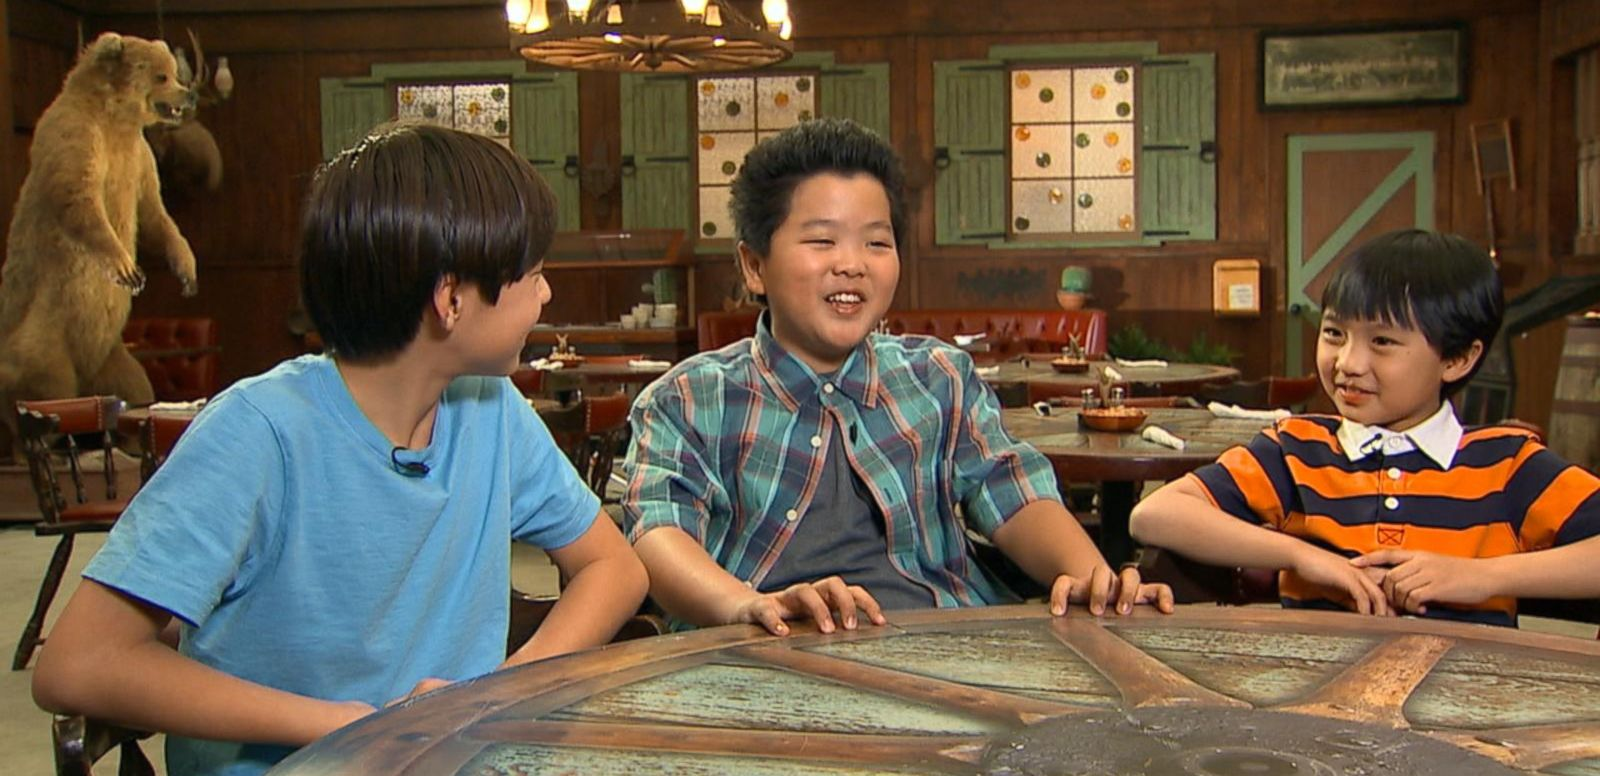 Behind the Scenes of 'Fresh Off the Boat' - ABC News